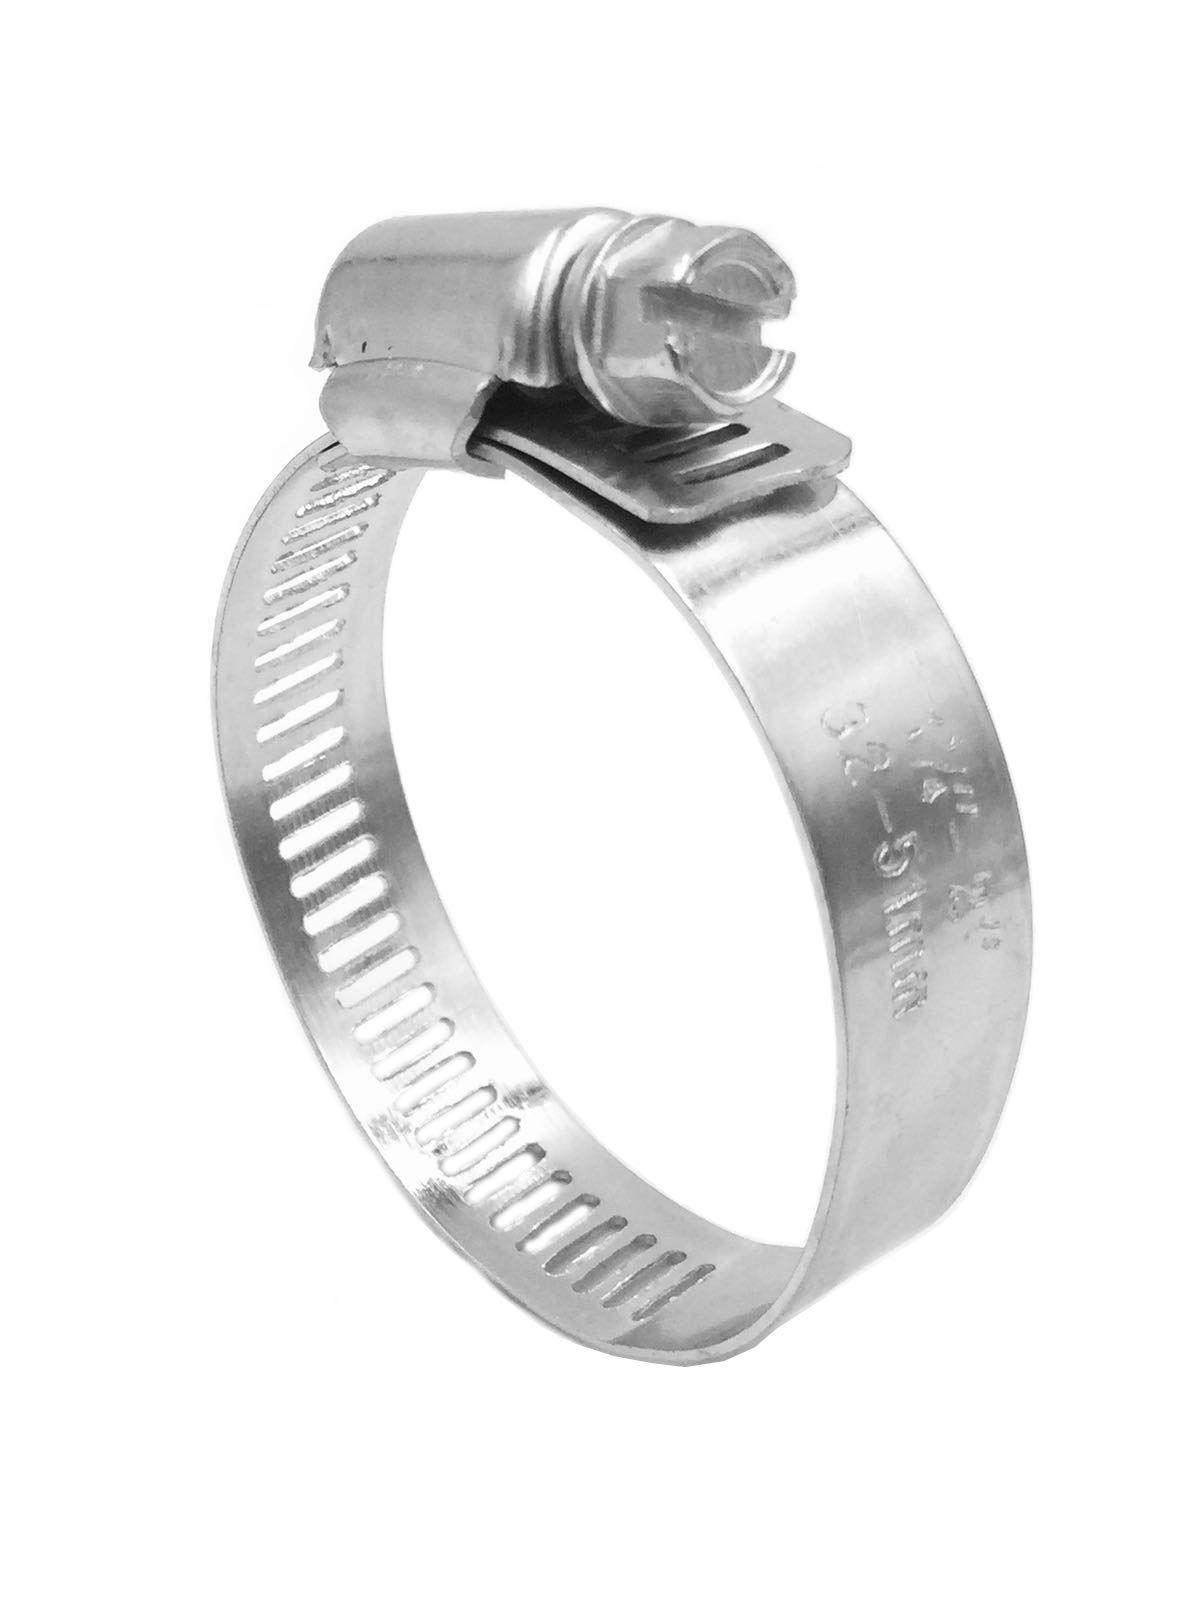 BRUFER 100217 Galvanized Steel Hose Clamps 2''-inch for Pipe Worm Gear Plumbing Automotive - Bulk Pack of 50 Clamps by BRUFER Quality Products